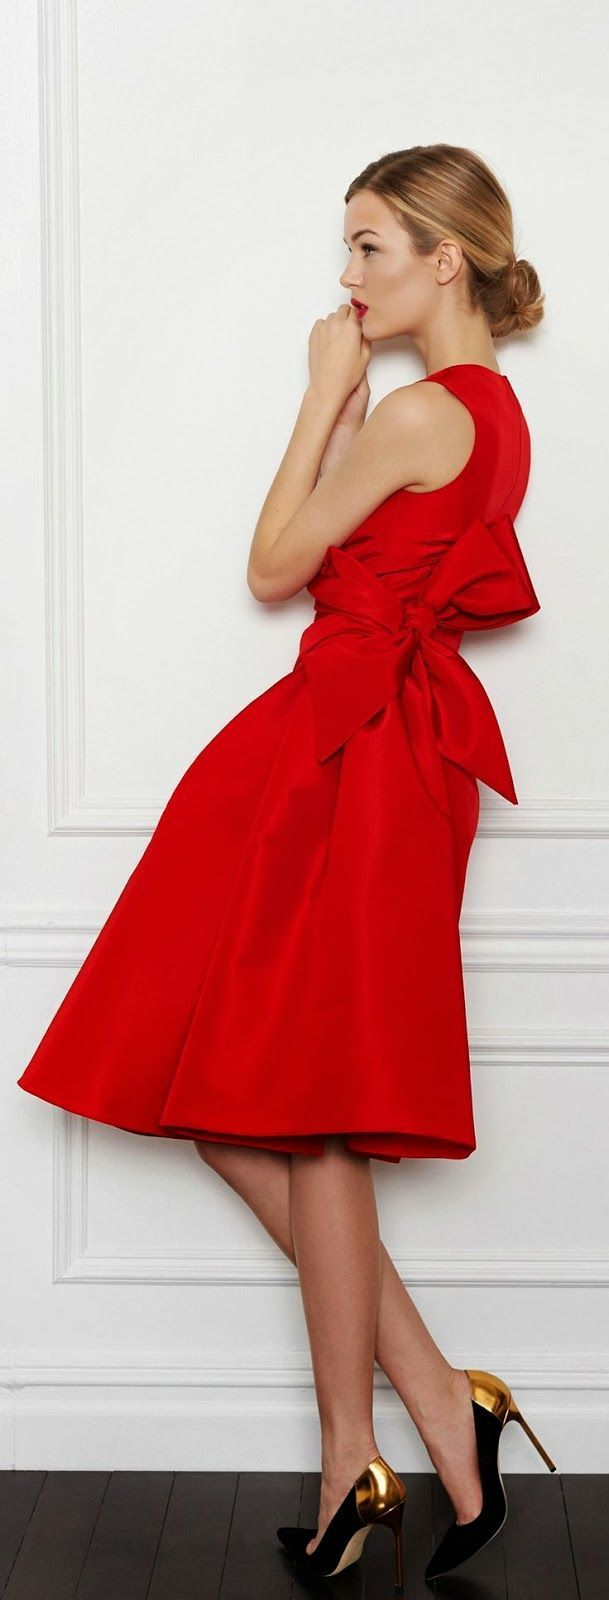 Comment porter la robe rouge